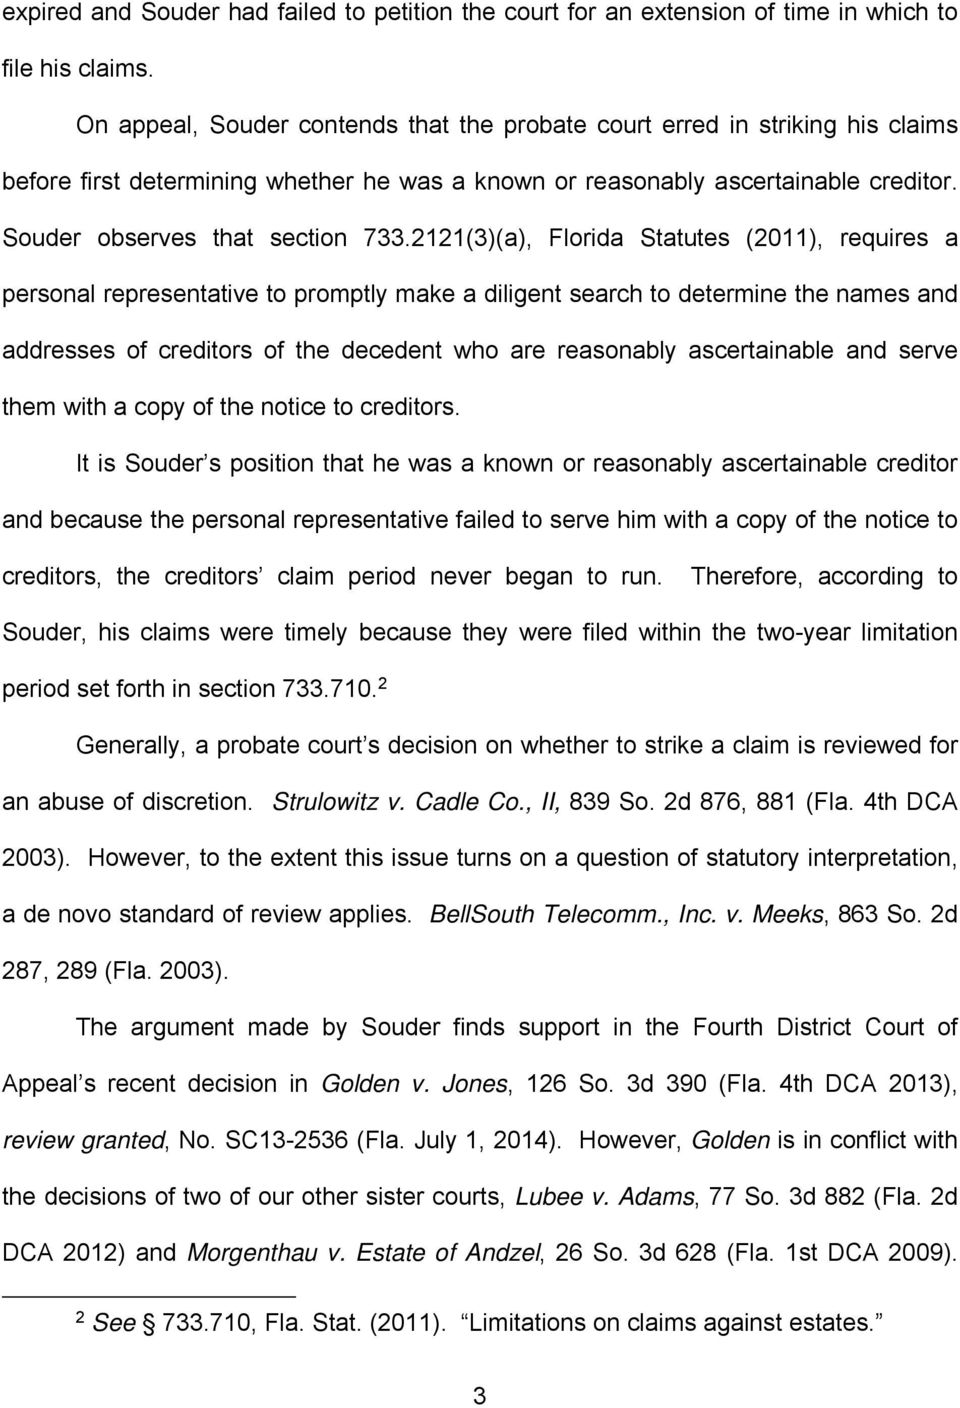 2121(3)(a), Florida Statutes (2011), requires a personal representative to promptly make a diligent search to determine the names and addresses of creditors of the decedent who are reasonably